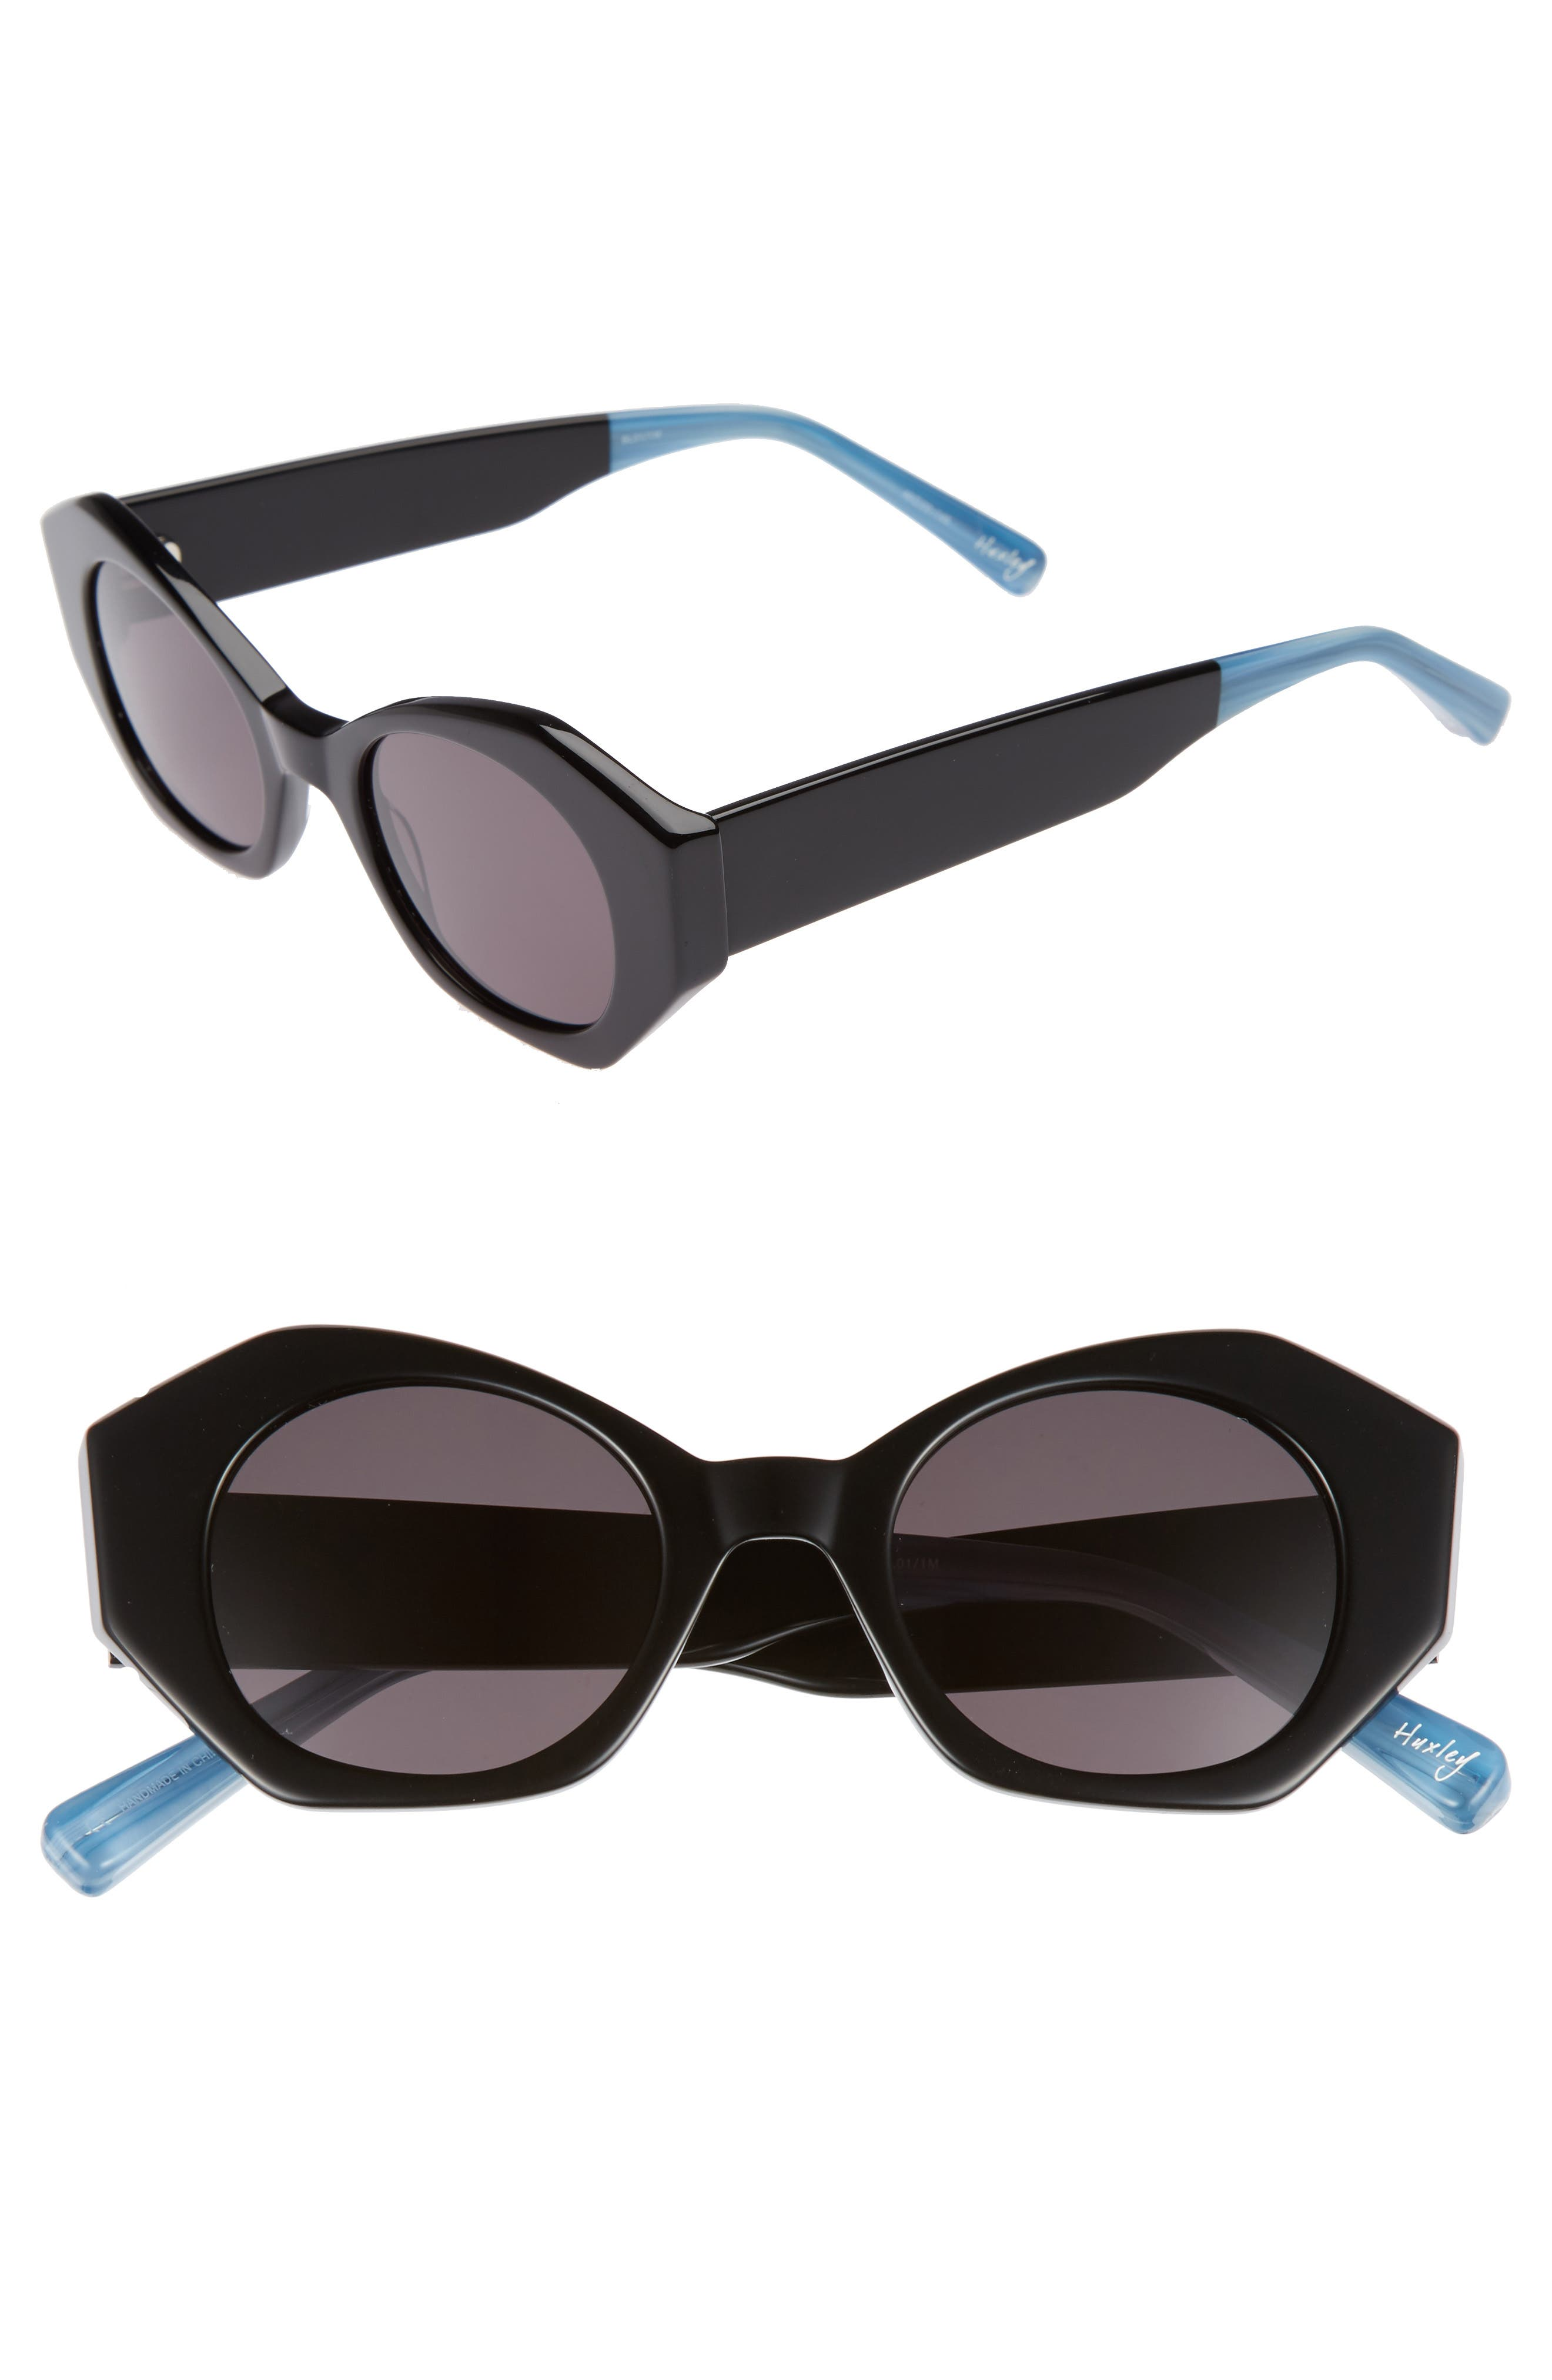 Huxley 46mm Geometric Sunglasses,                         Main,                         color,